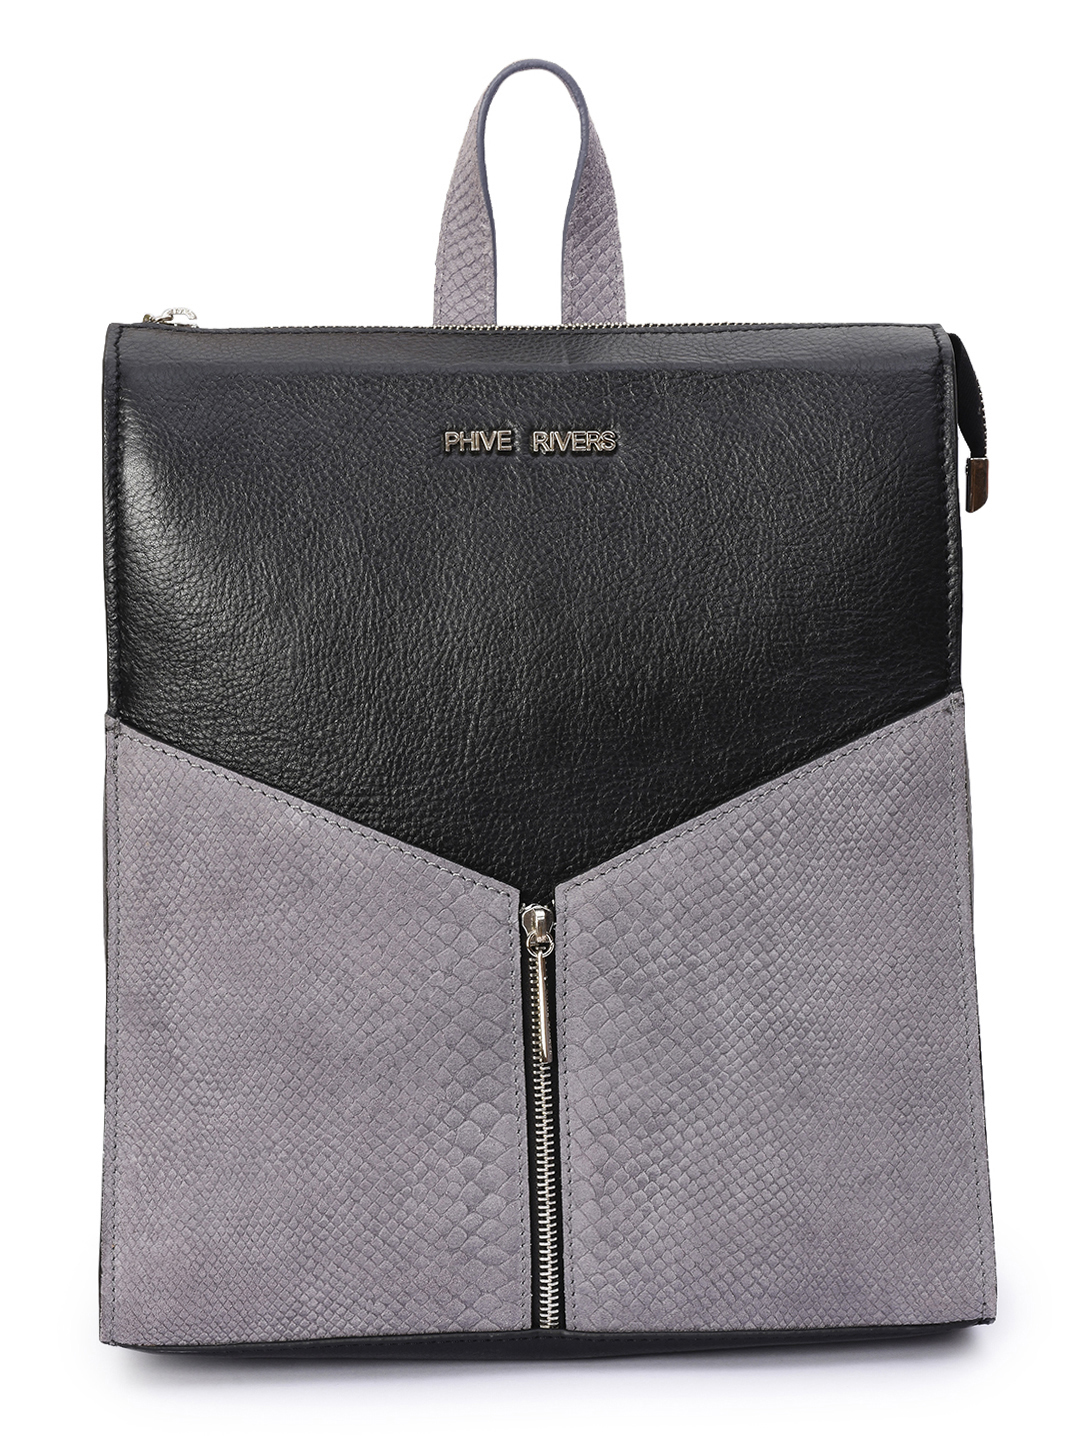 Phive Rivers Women s Leather Backpack (Black) on Storenvy 6b93a06a20618